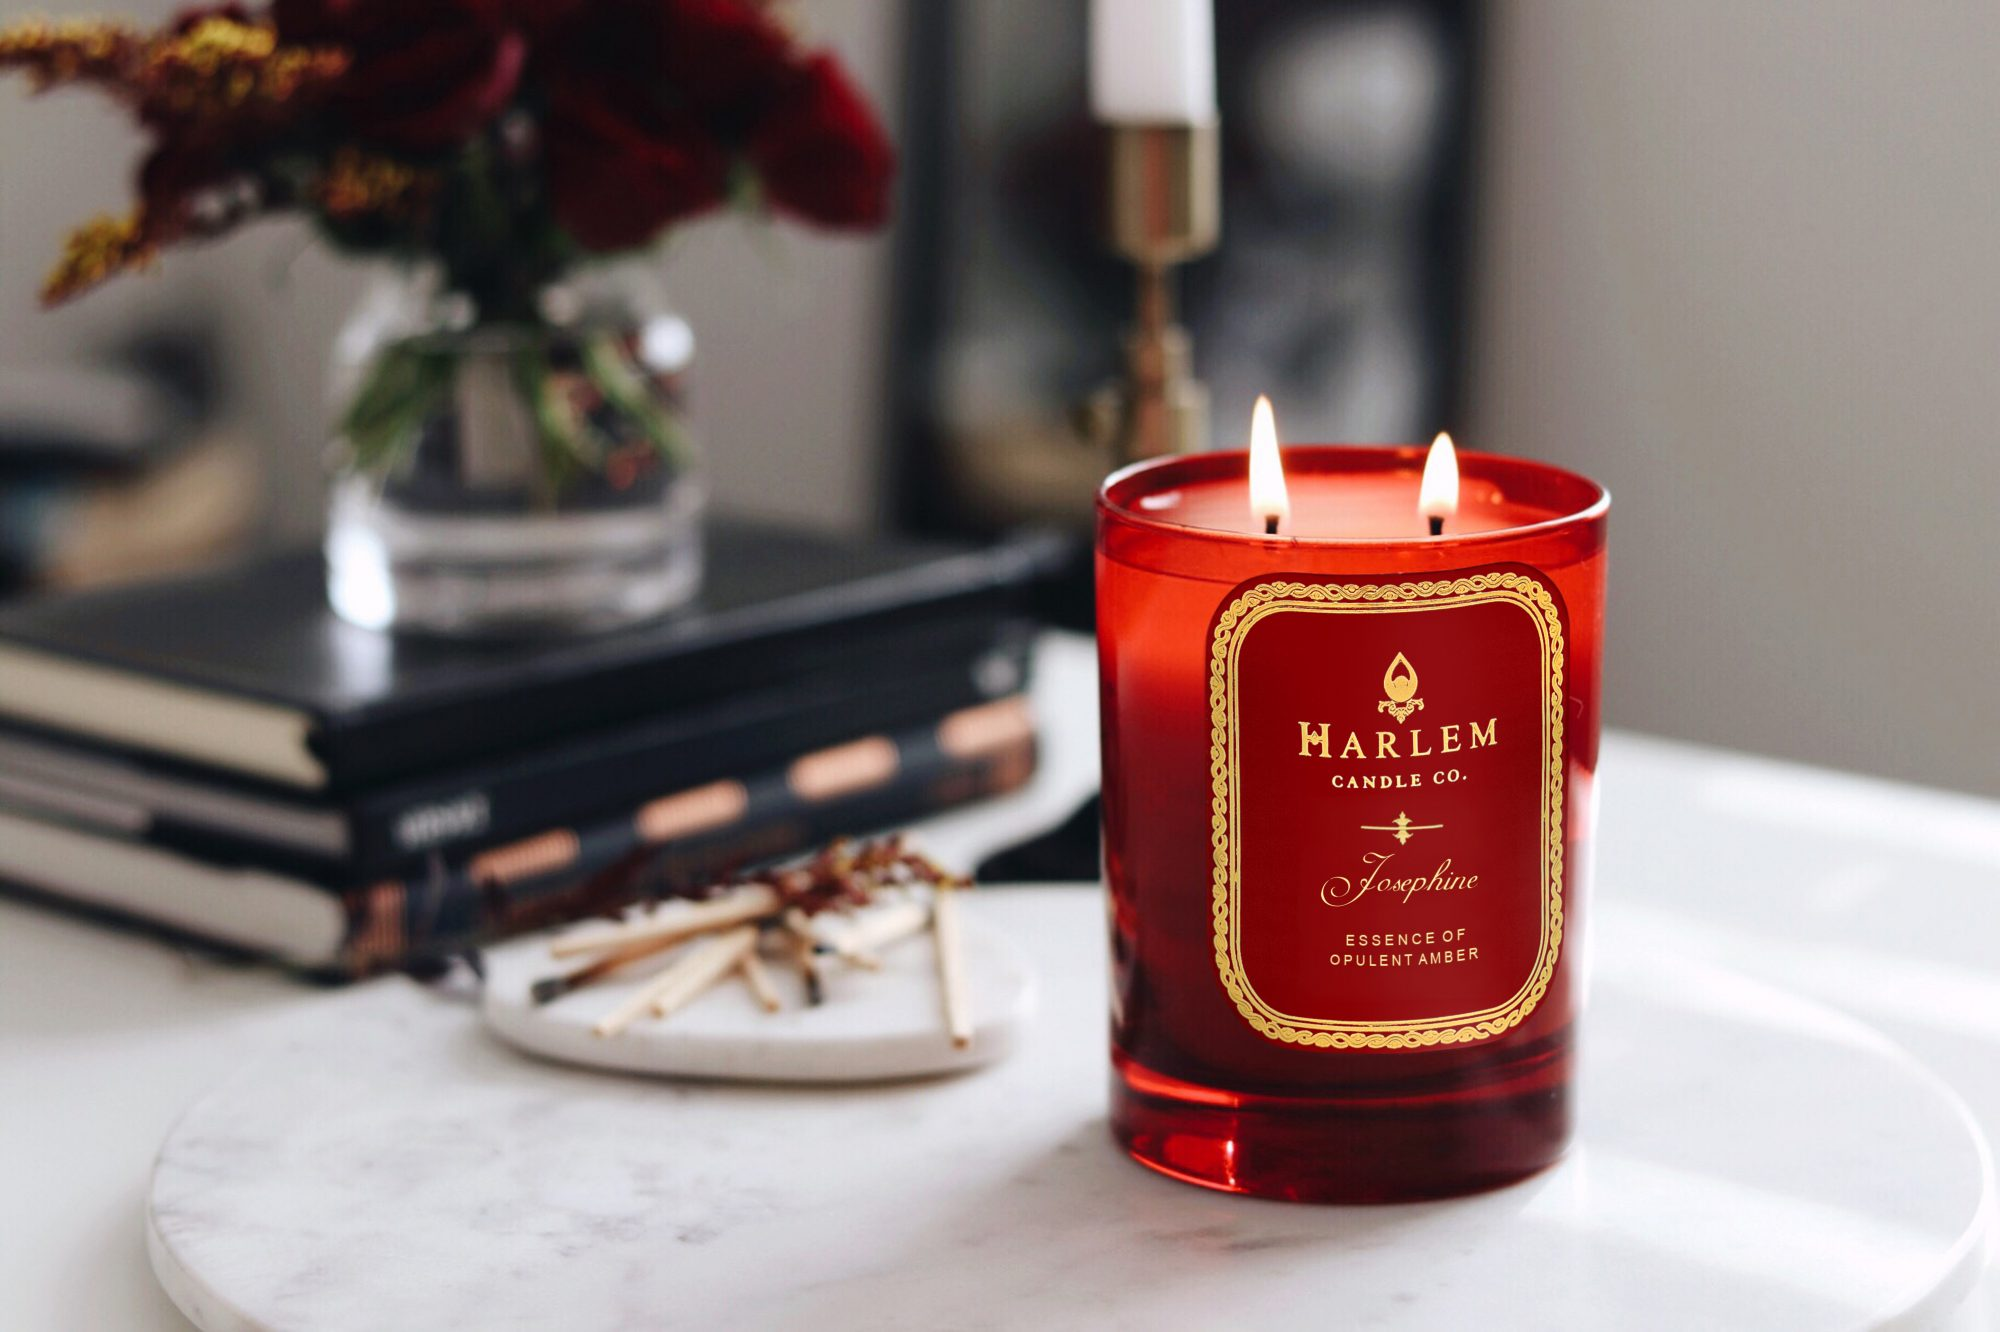 harlem candle company josephine candle in red vessel